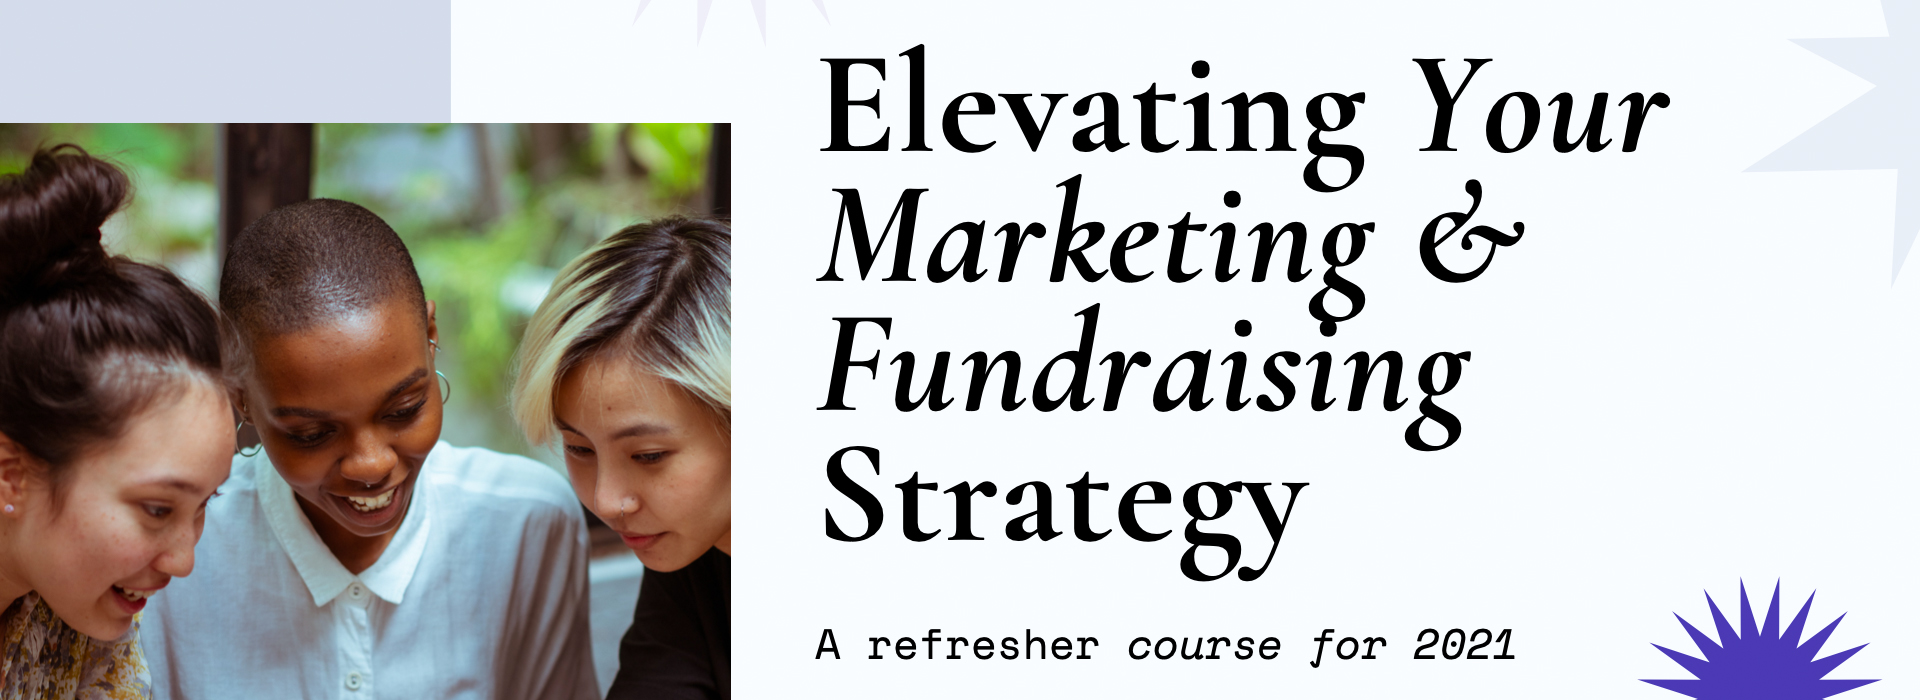 marketing strategy refresher course